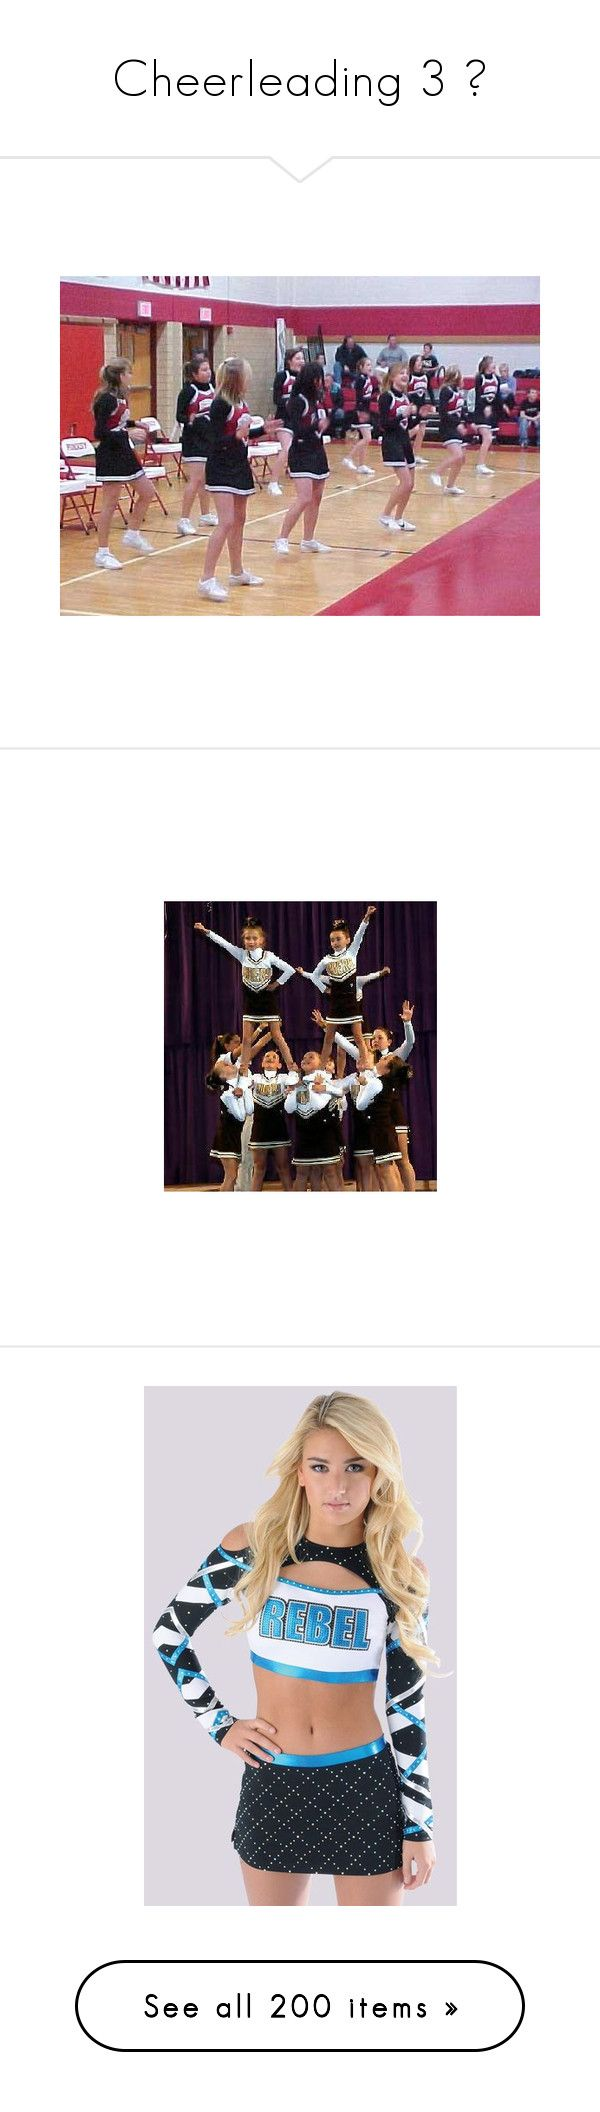 """""""Cheerleading 3 ♡"""" by southernbellewolf ❤ liked on Polyvore featuring cheer, pictures, sport, home, home decor, pewter plates, engraved plates, bags, cheerleading and sports"""